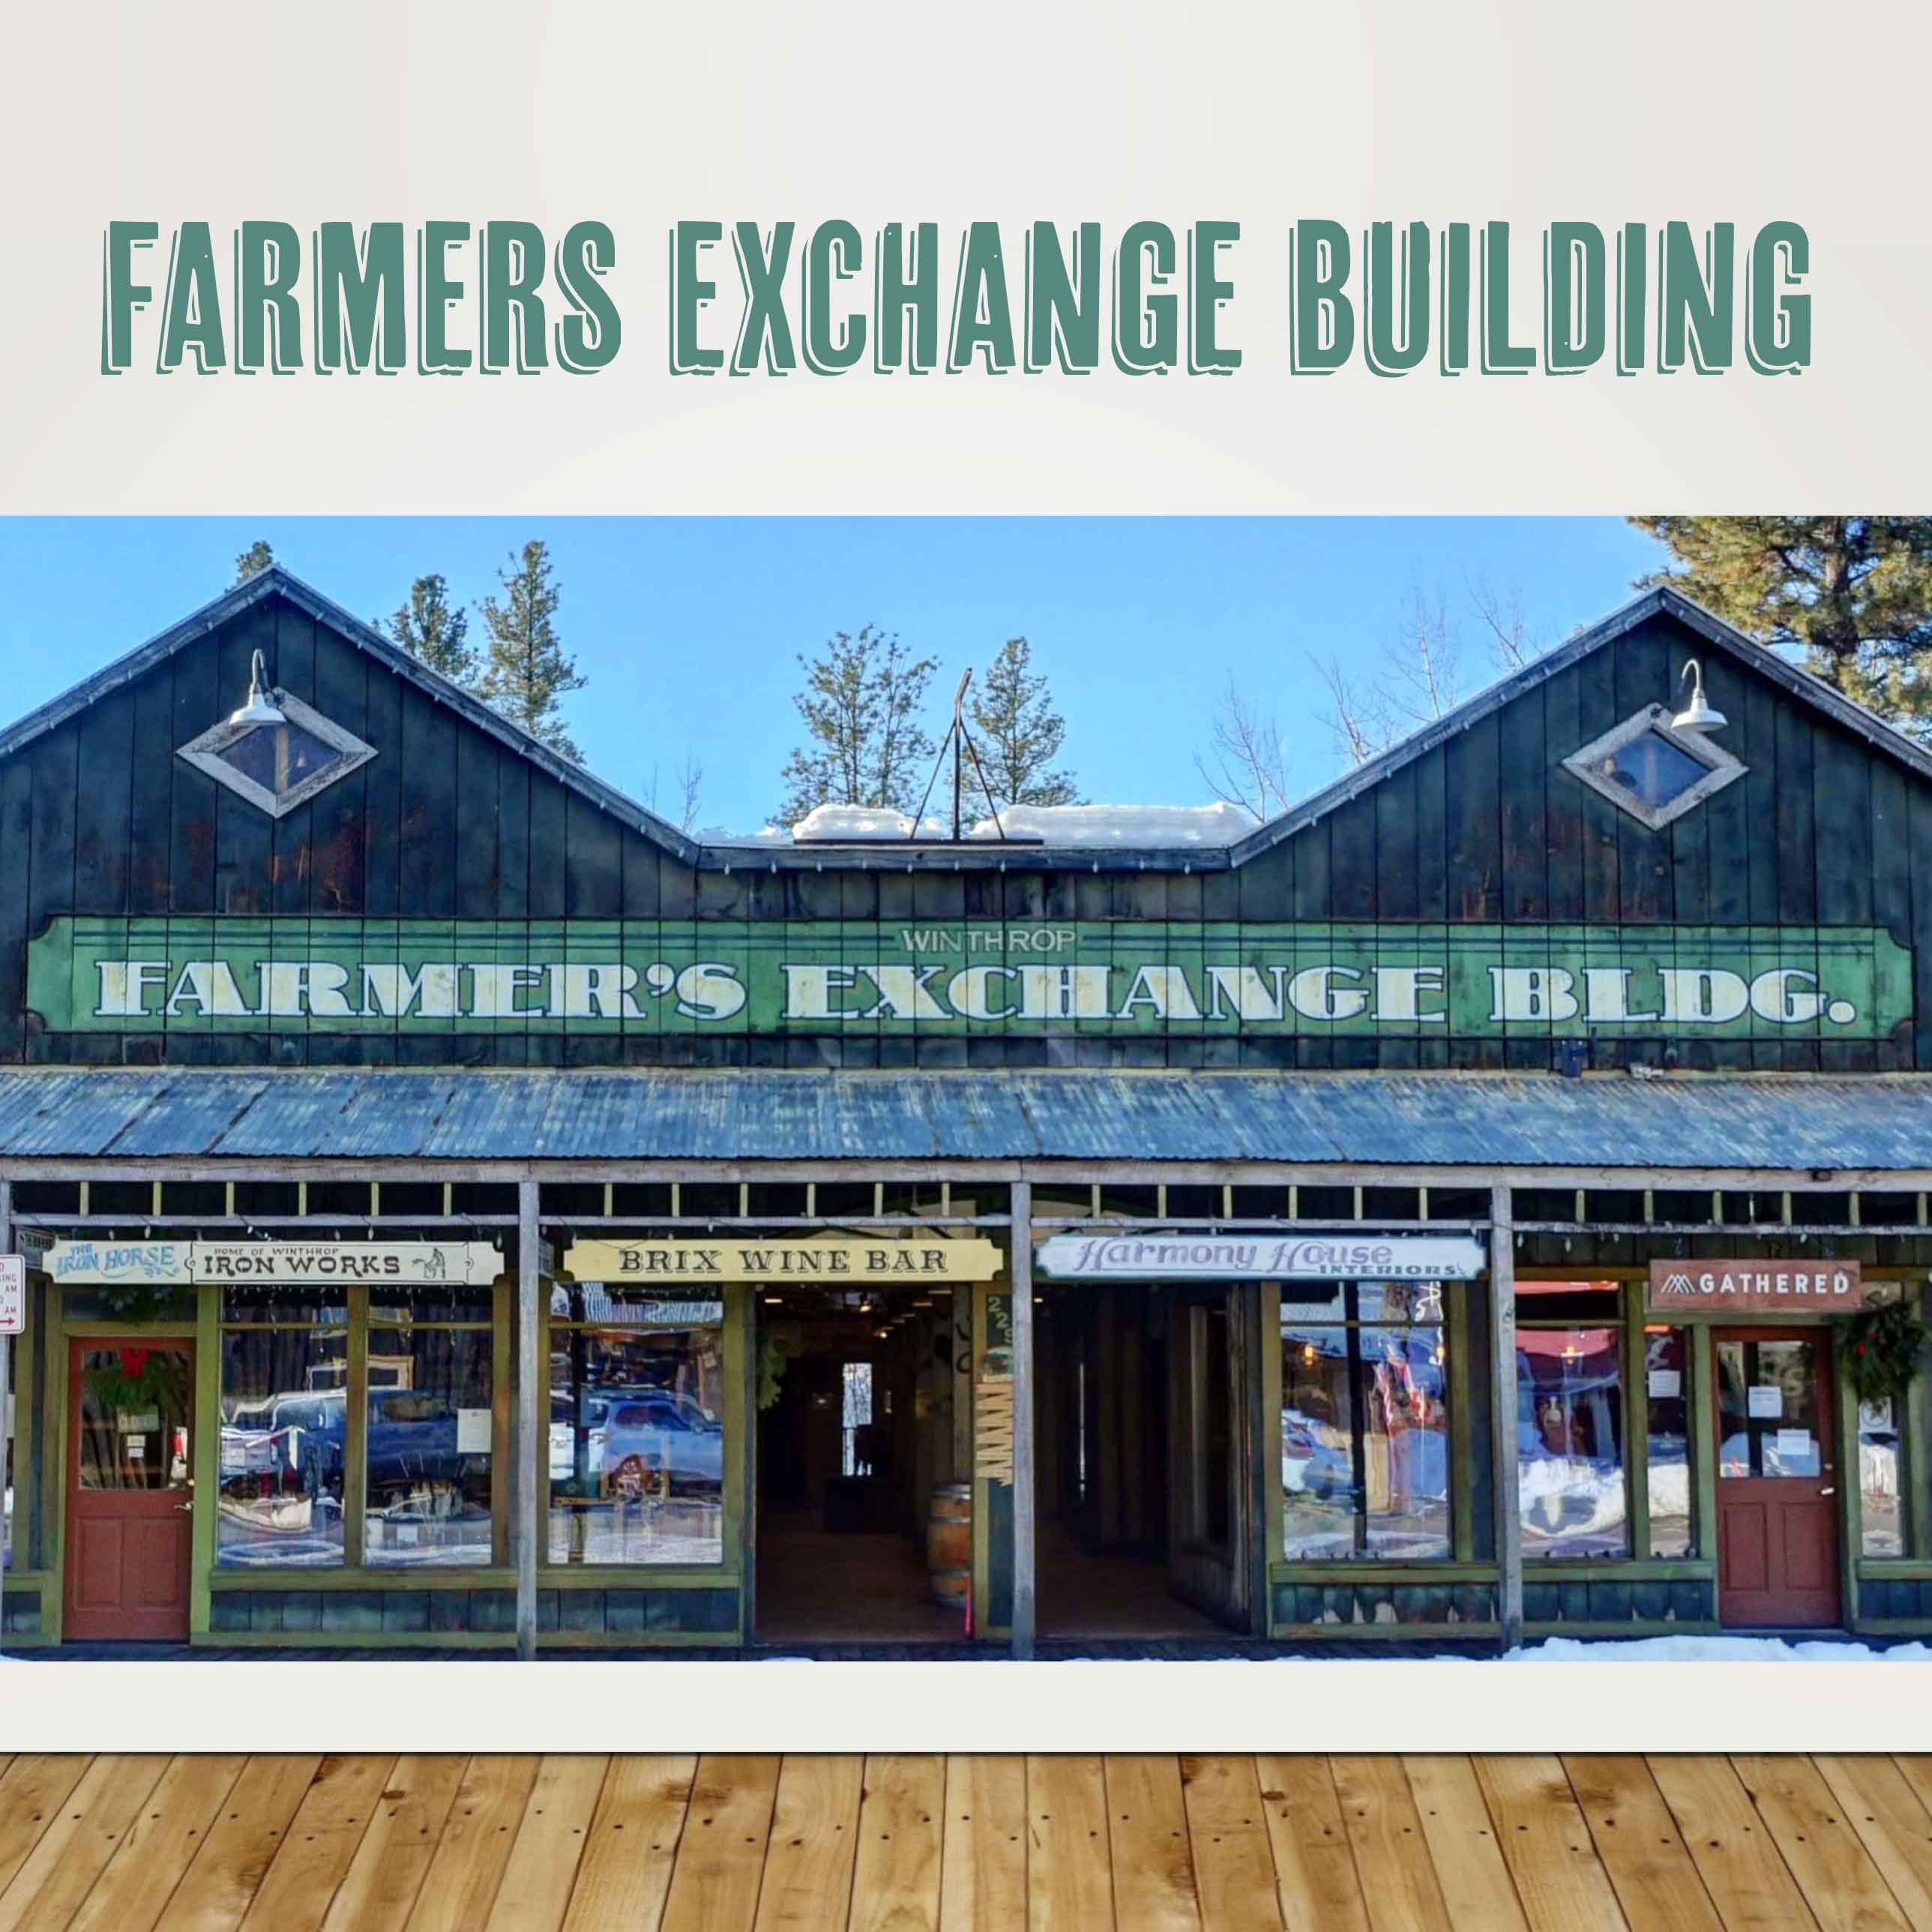 Located on the Boardwalk, the Farmers Exchange Building offers a variety of shopping and dining experiences